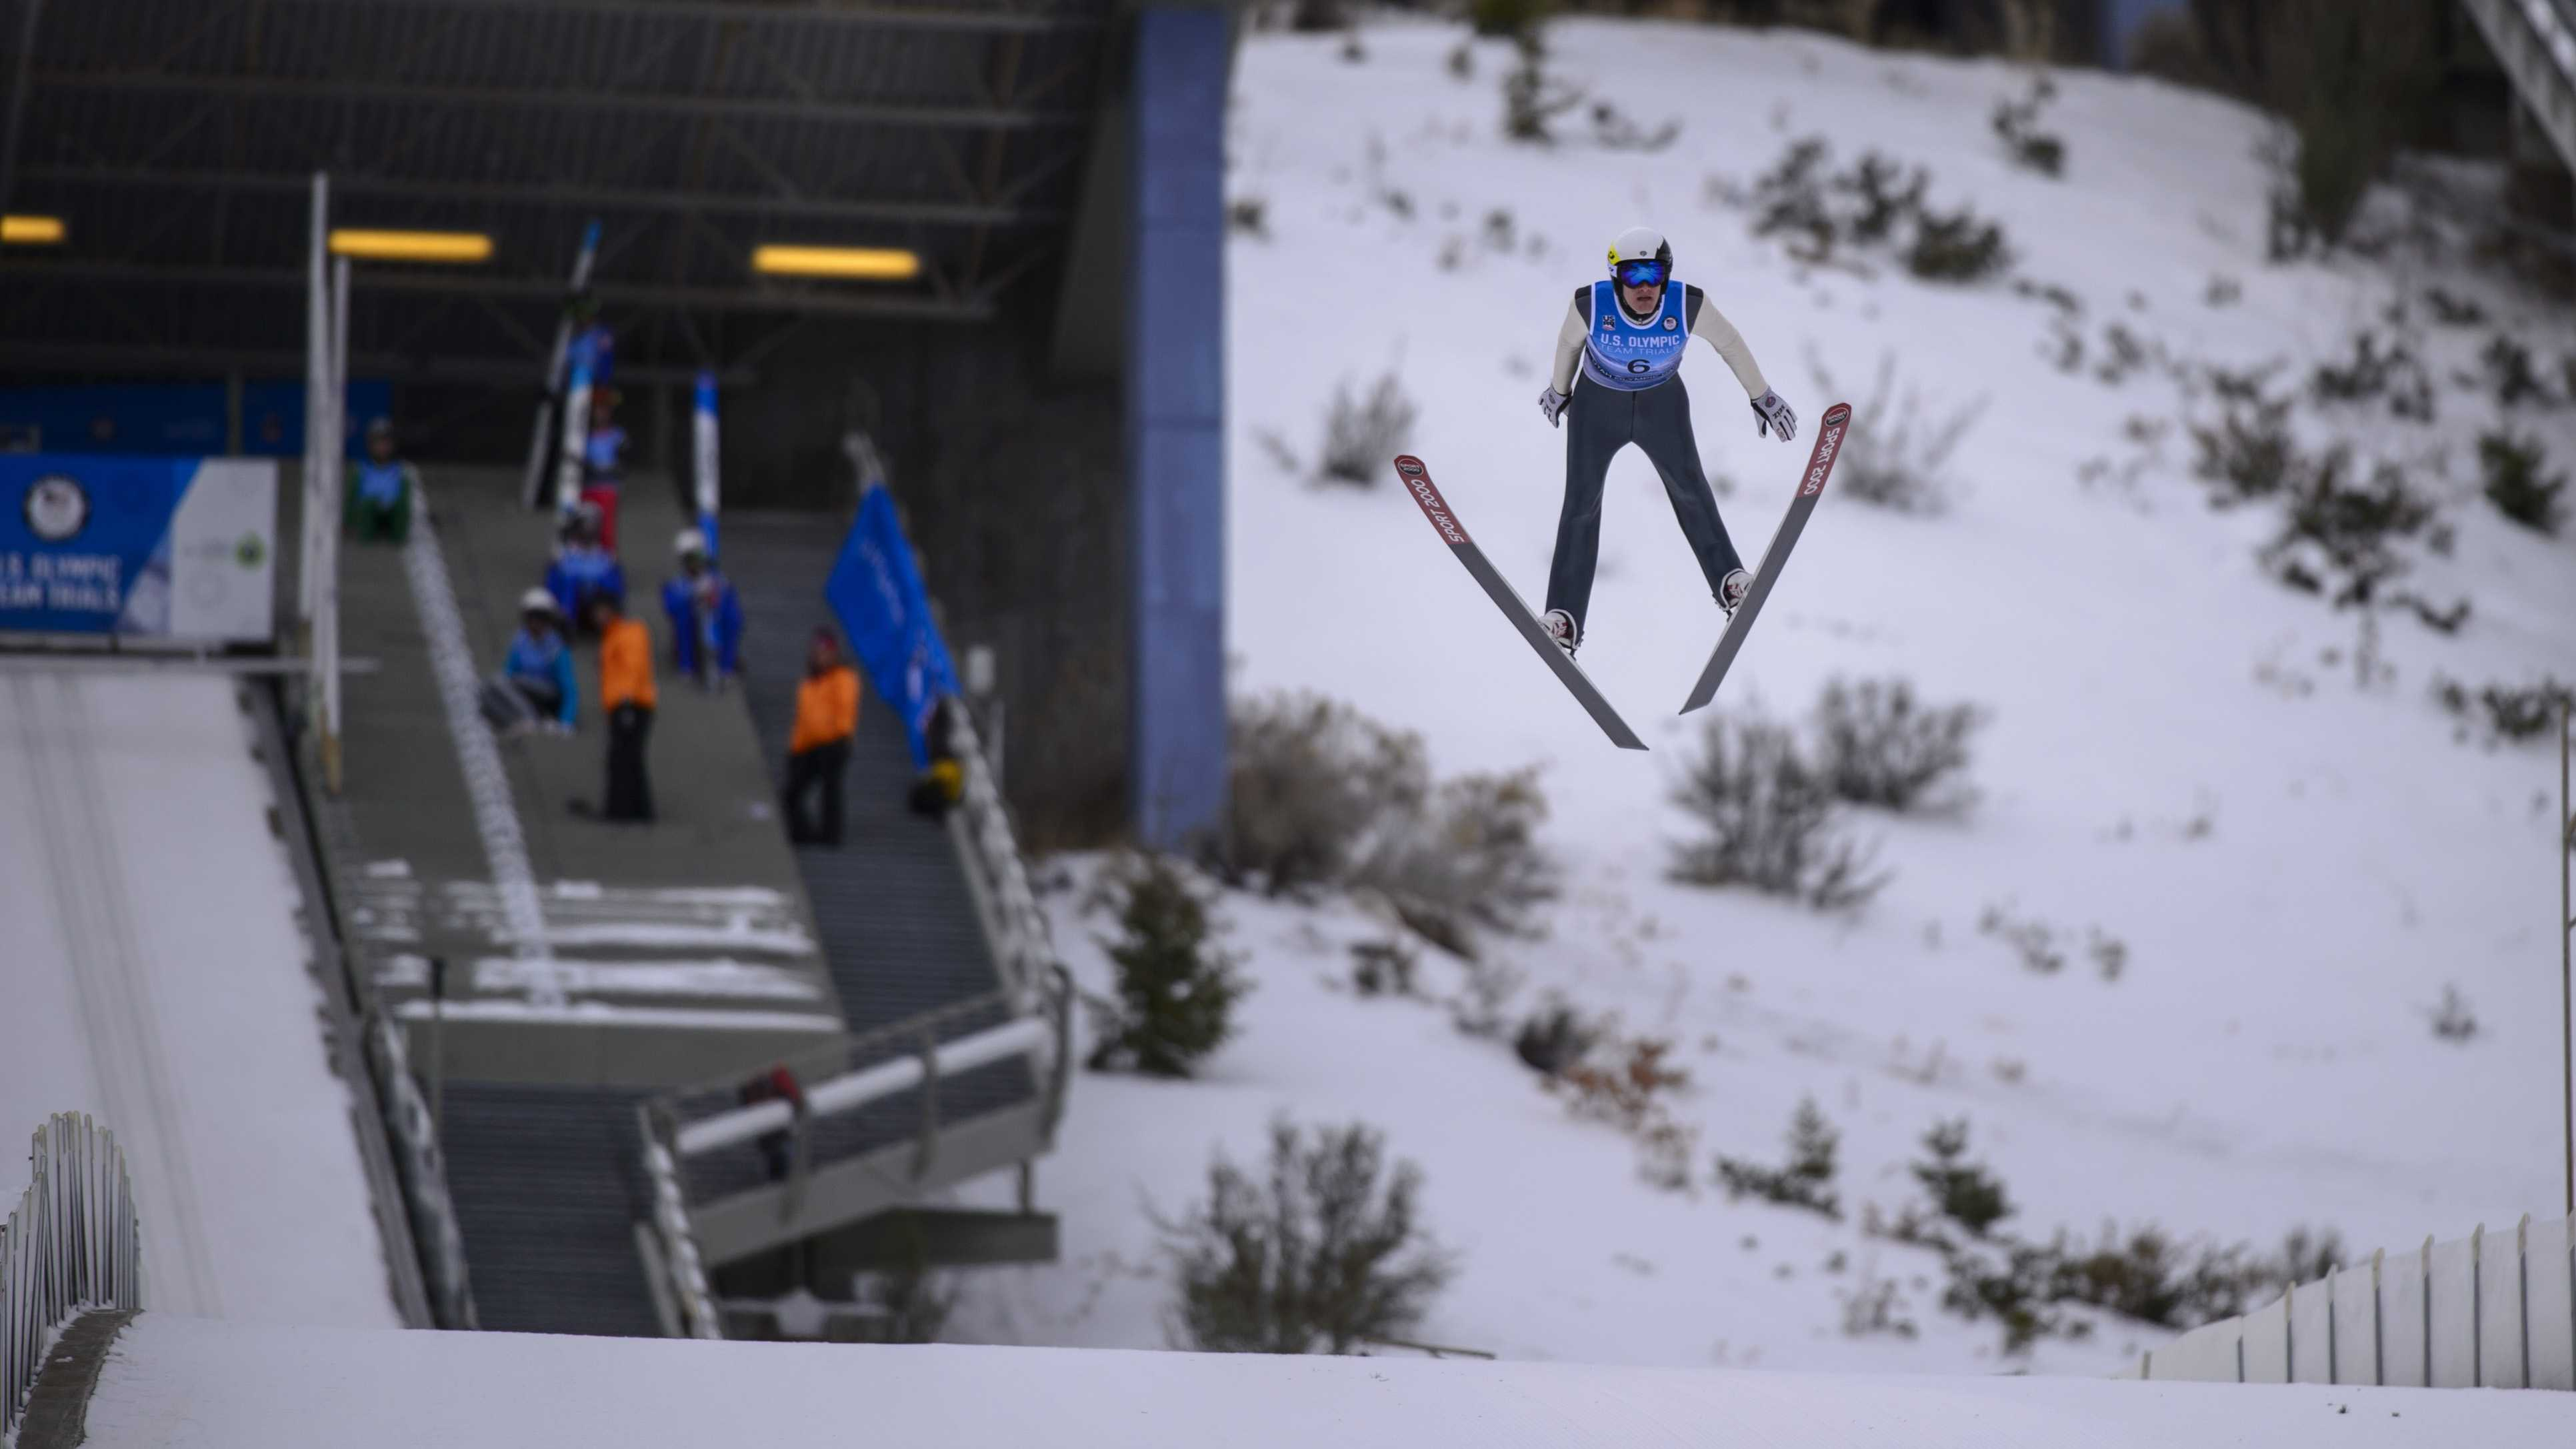 Adam Loomis (6) competes in the U.S. Olympic Team trials for Nordic Combined at the Utah Olympic Park in Park City, Utah on Saturday, Dec. 30, 2017  (Photo by Kiffer Creveling)